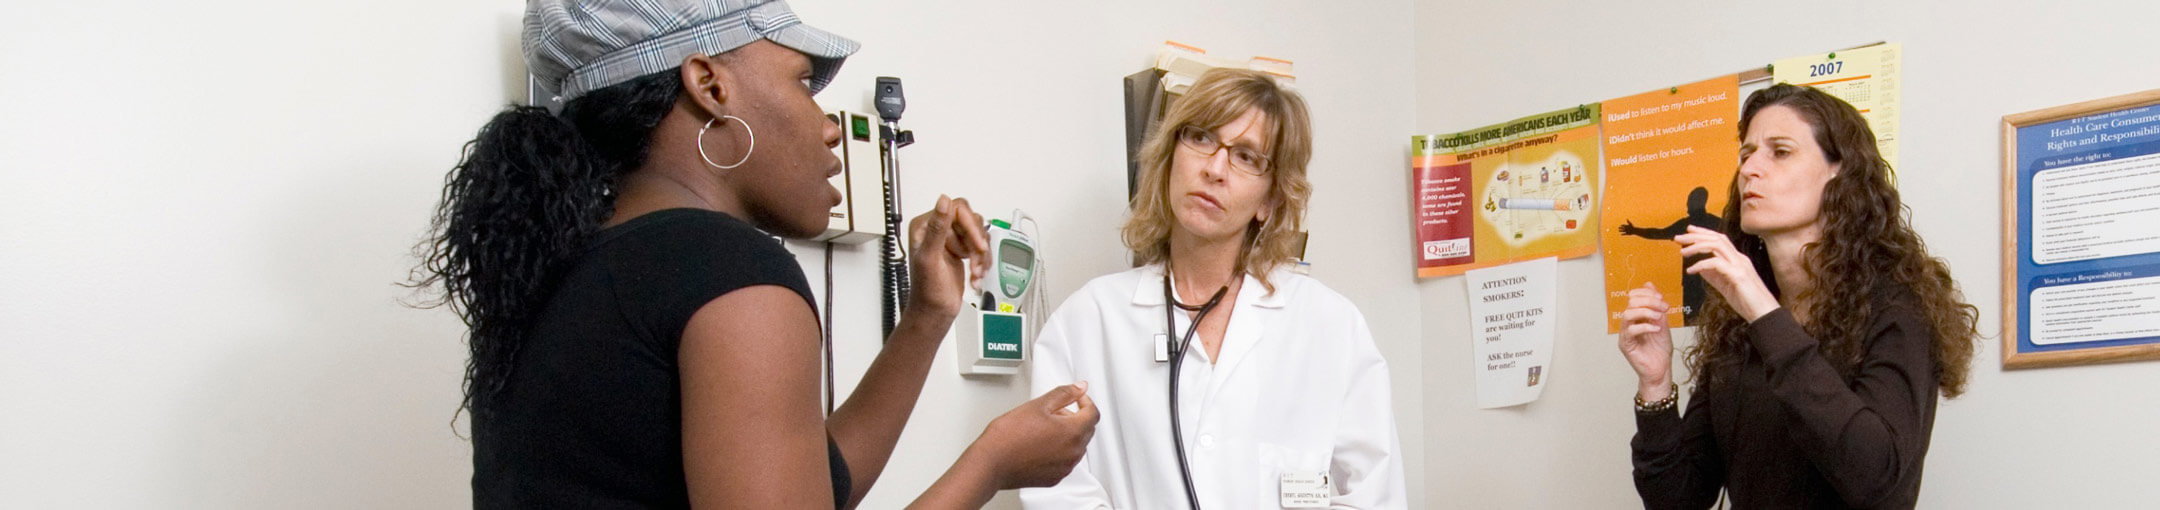 A patient communicating with a doctor in an exam room with an interpreter.